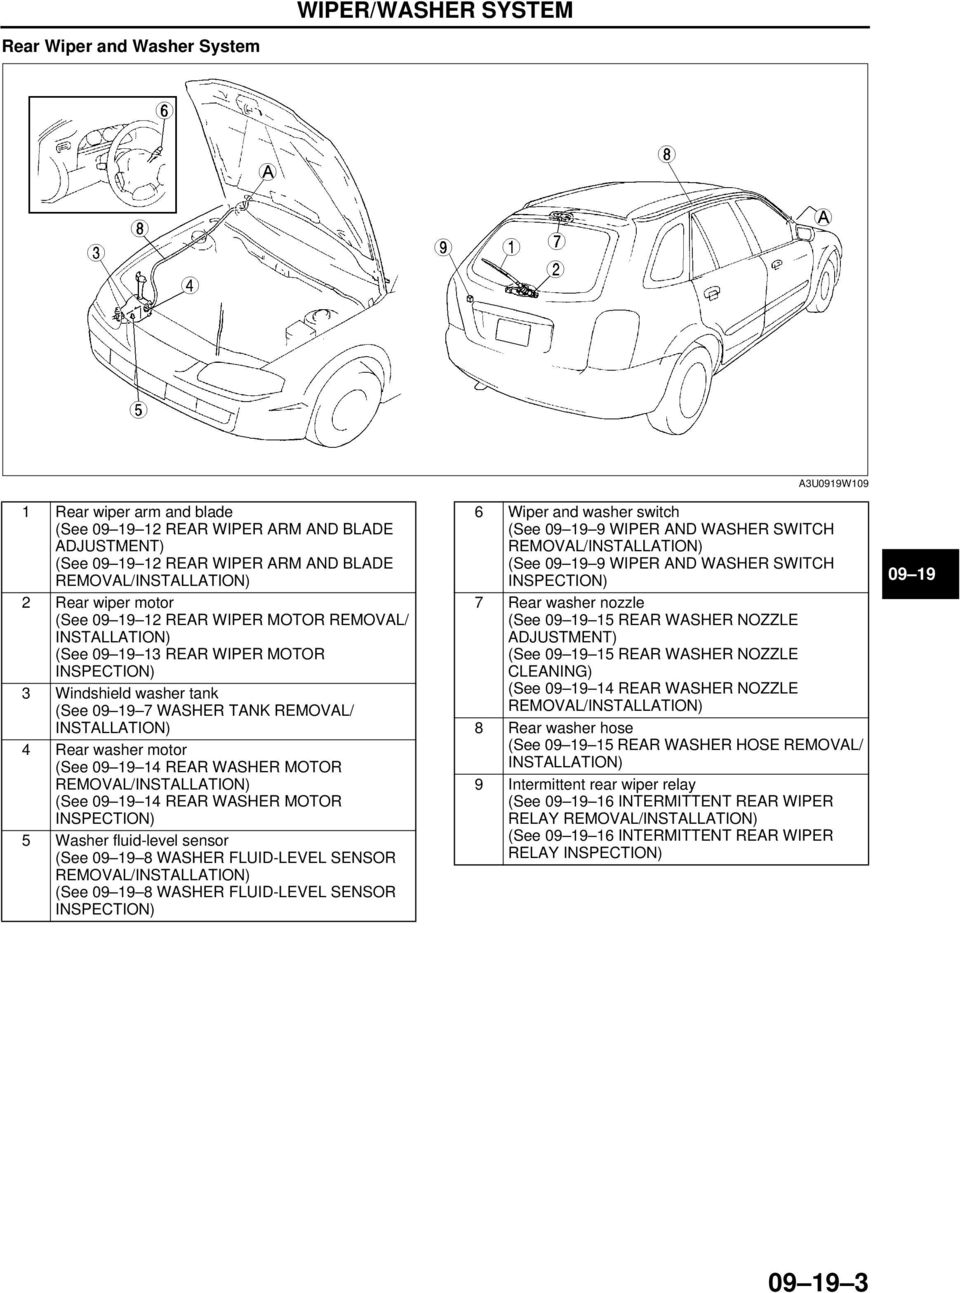 09 19 Wiper Washer System Pdf How To Wire 3 Way Light Switch Wiring Diagram 400 Watt Motor 5 Fluid Level Sensor See 8